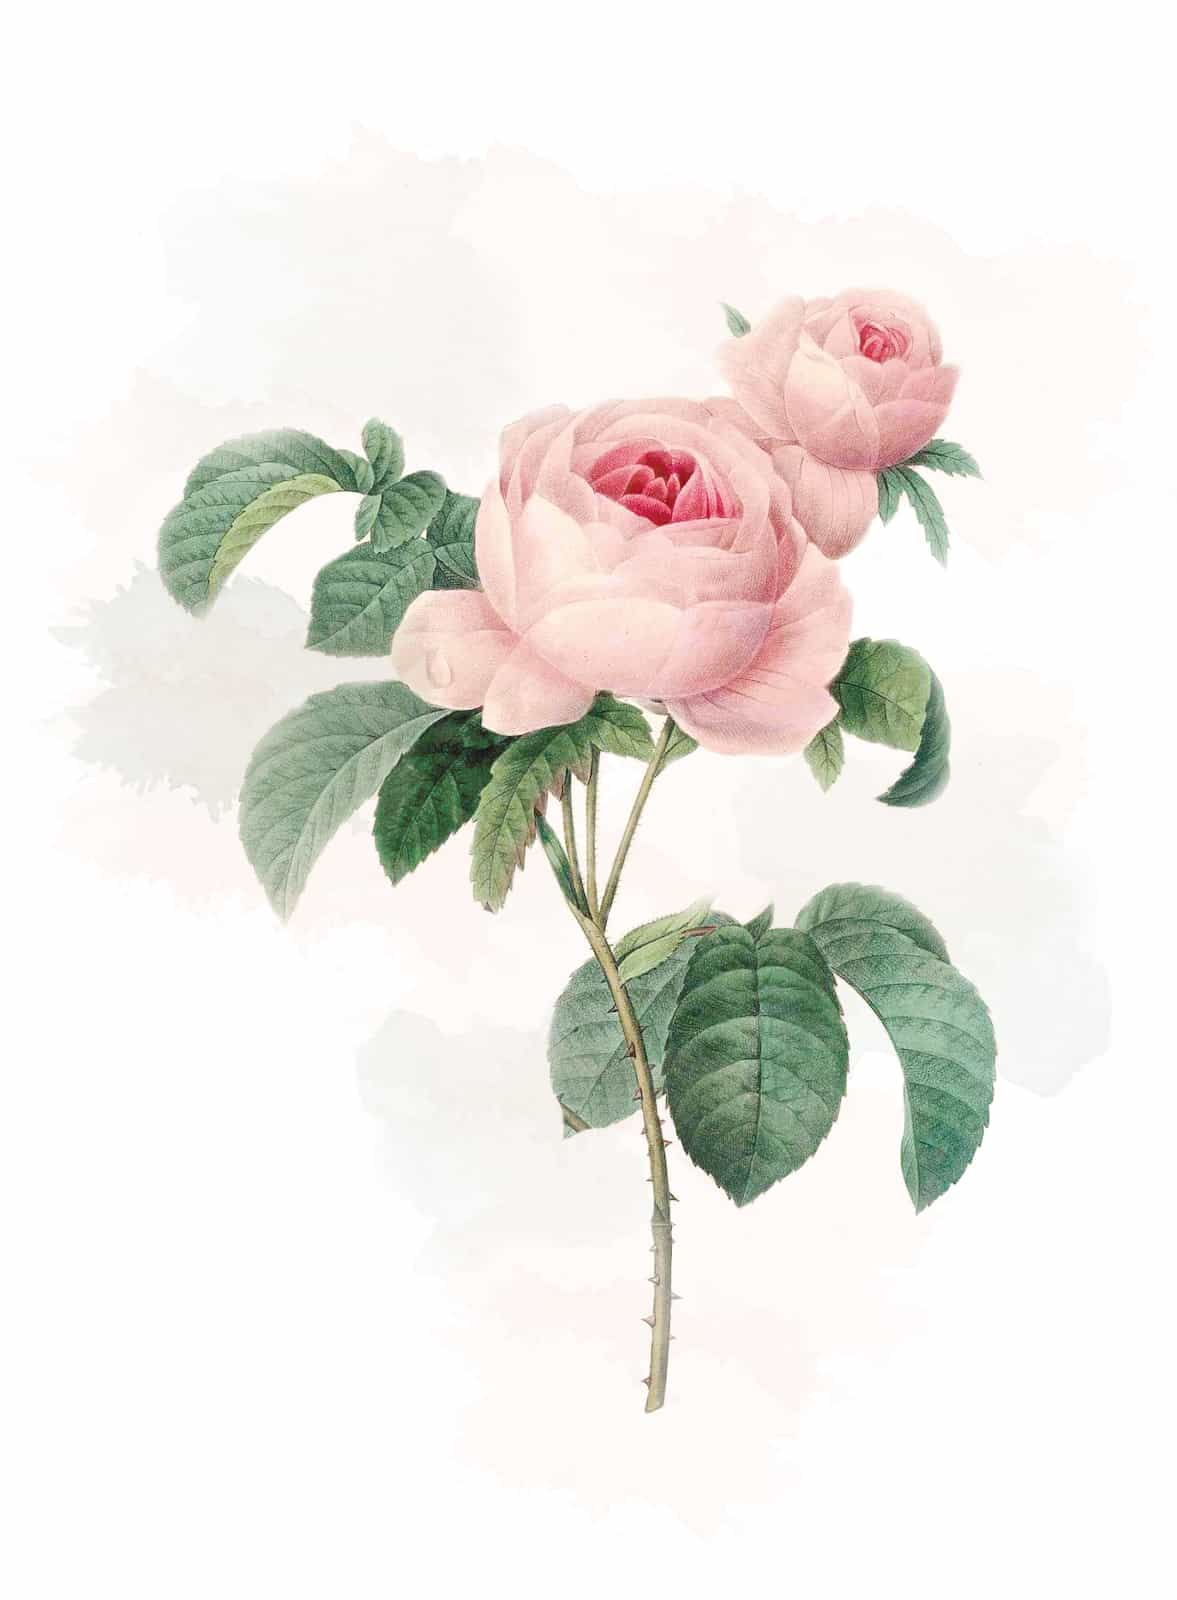 Victorian flowers and their meaning The Smell of Roses The Smell of Roses